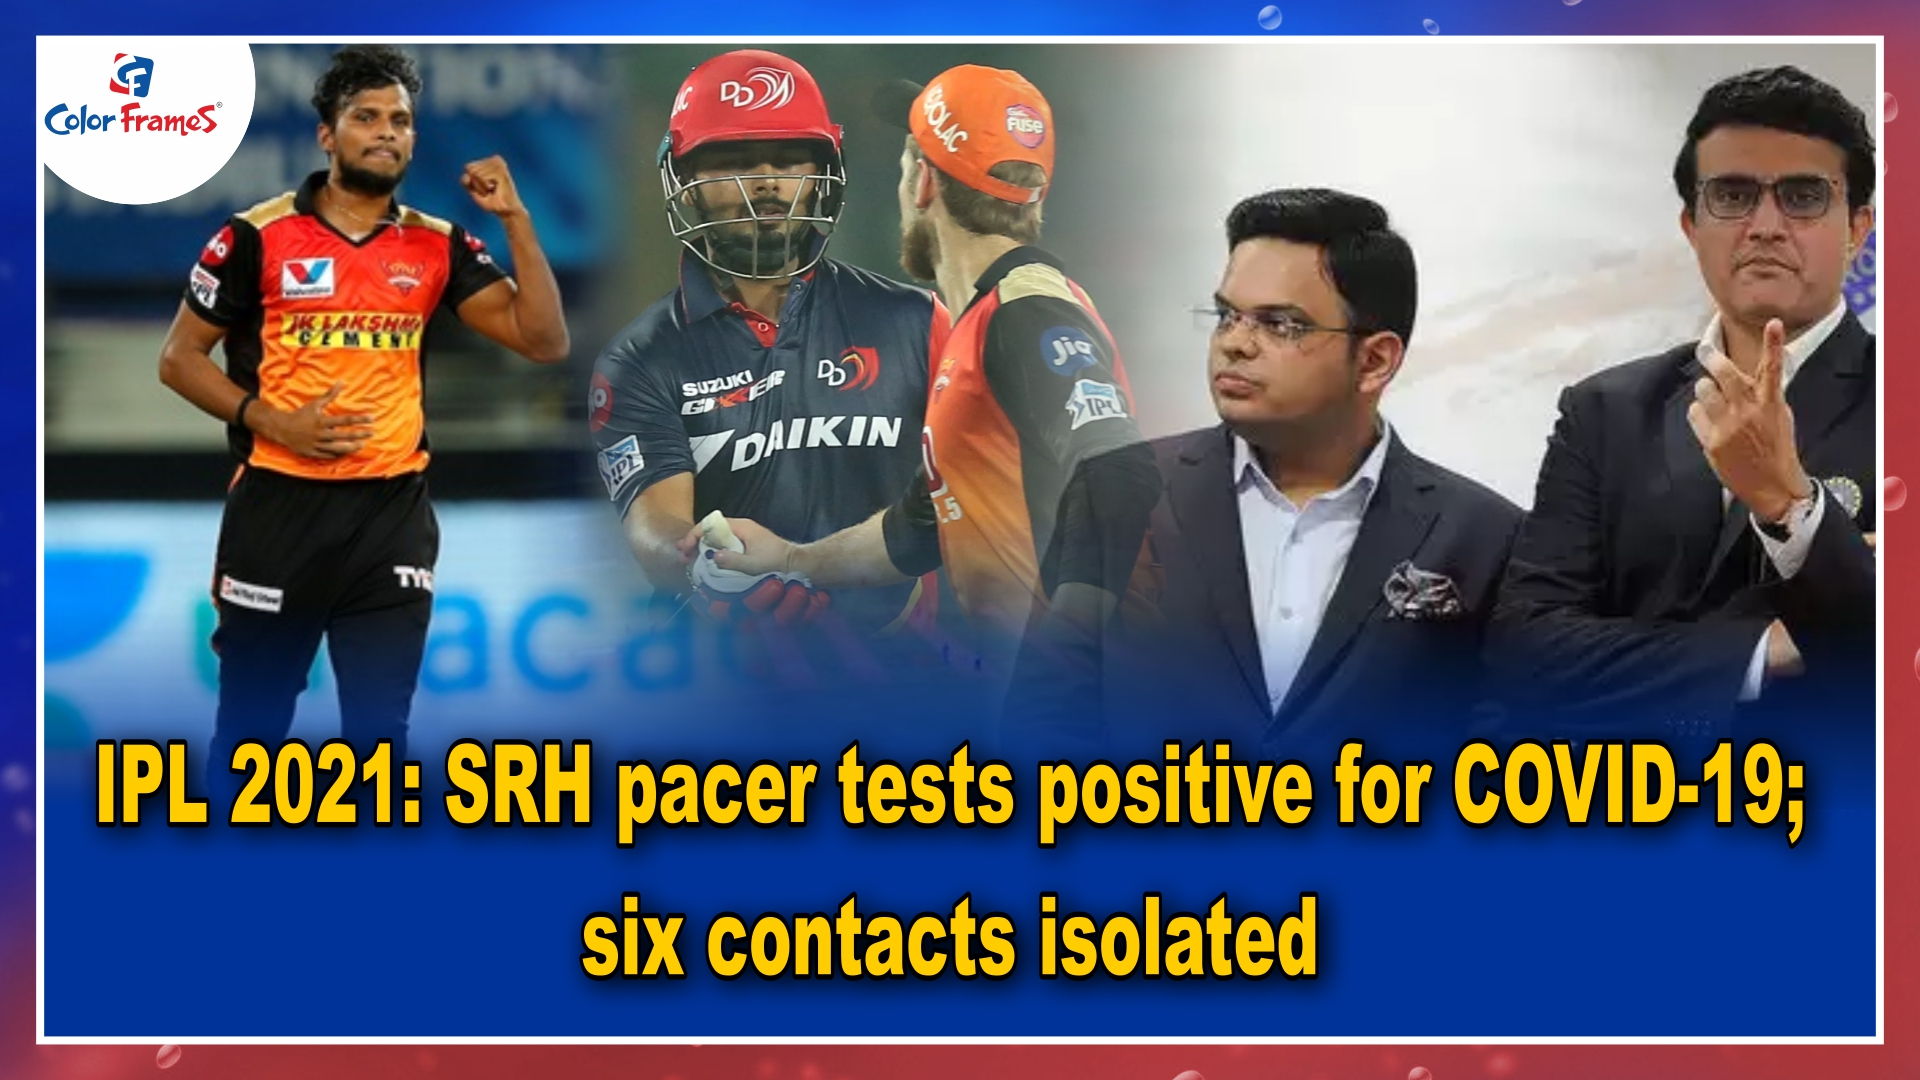 IPL 2021: SRH pacer tests positive for COVID-19; six contacts isolated